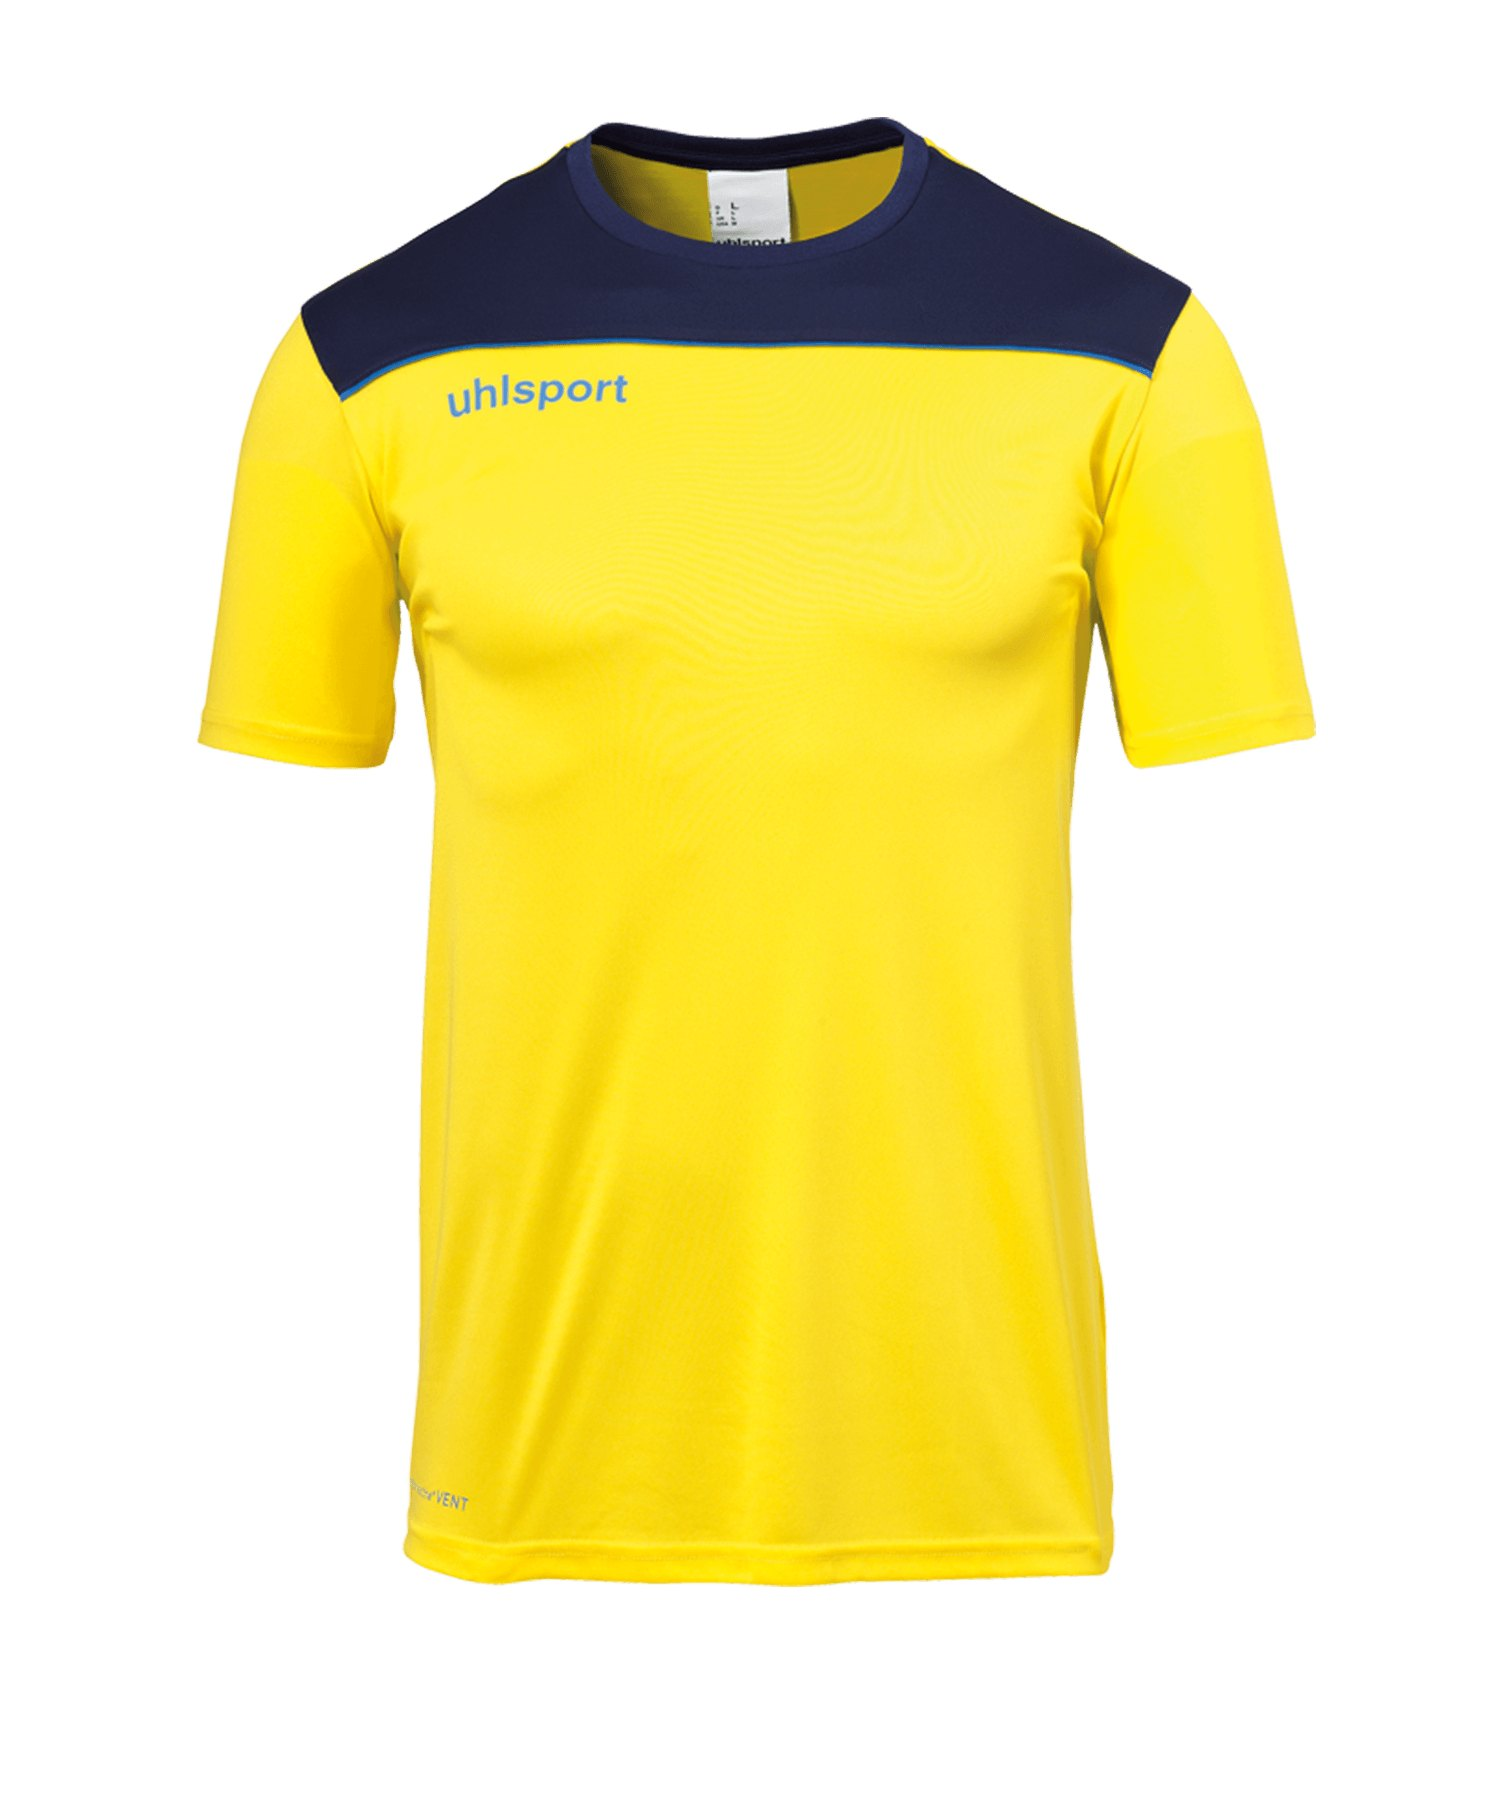 Uhlsport Offense 23 Trainingsshirt Gelb Blau F11 - gelb